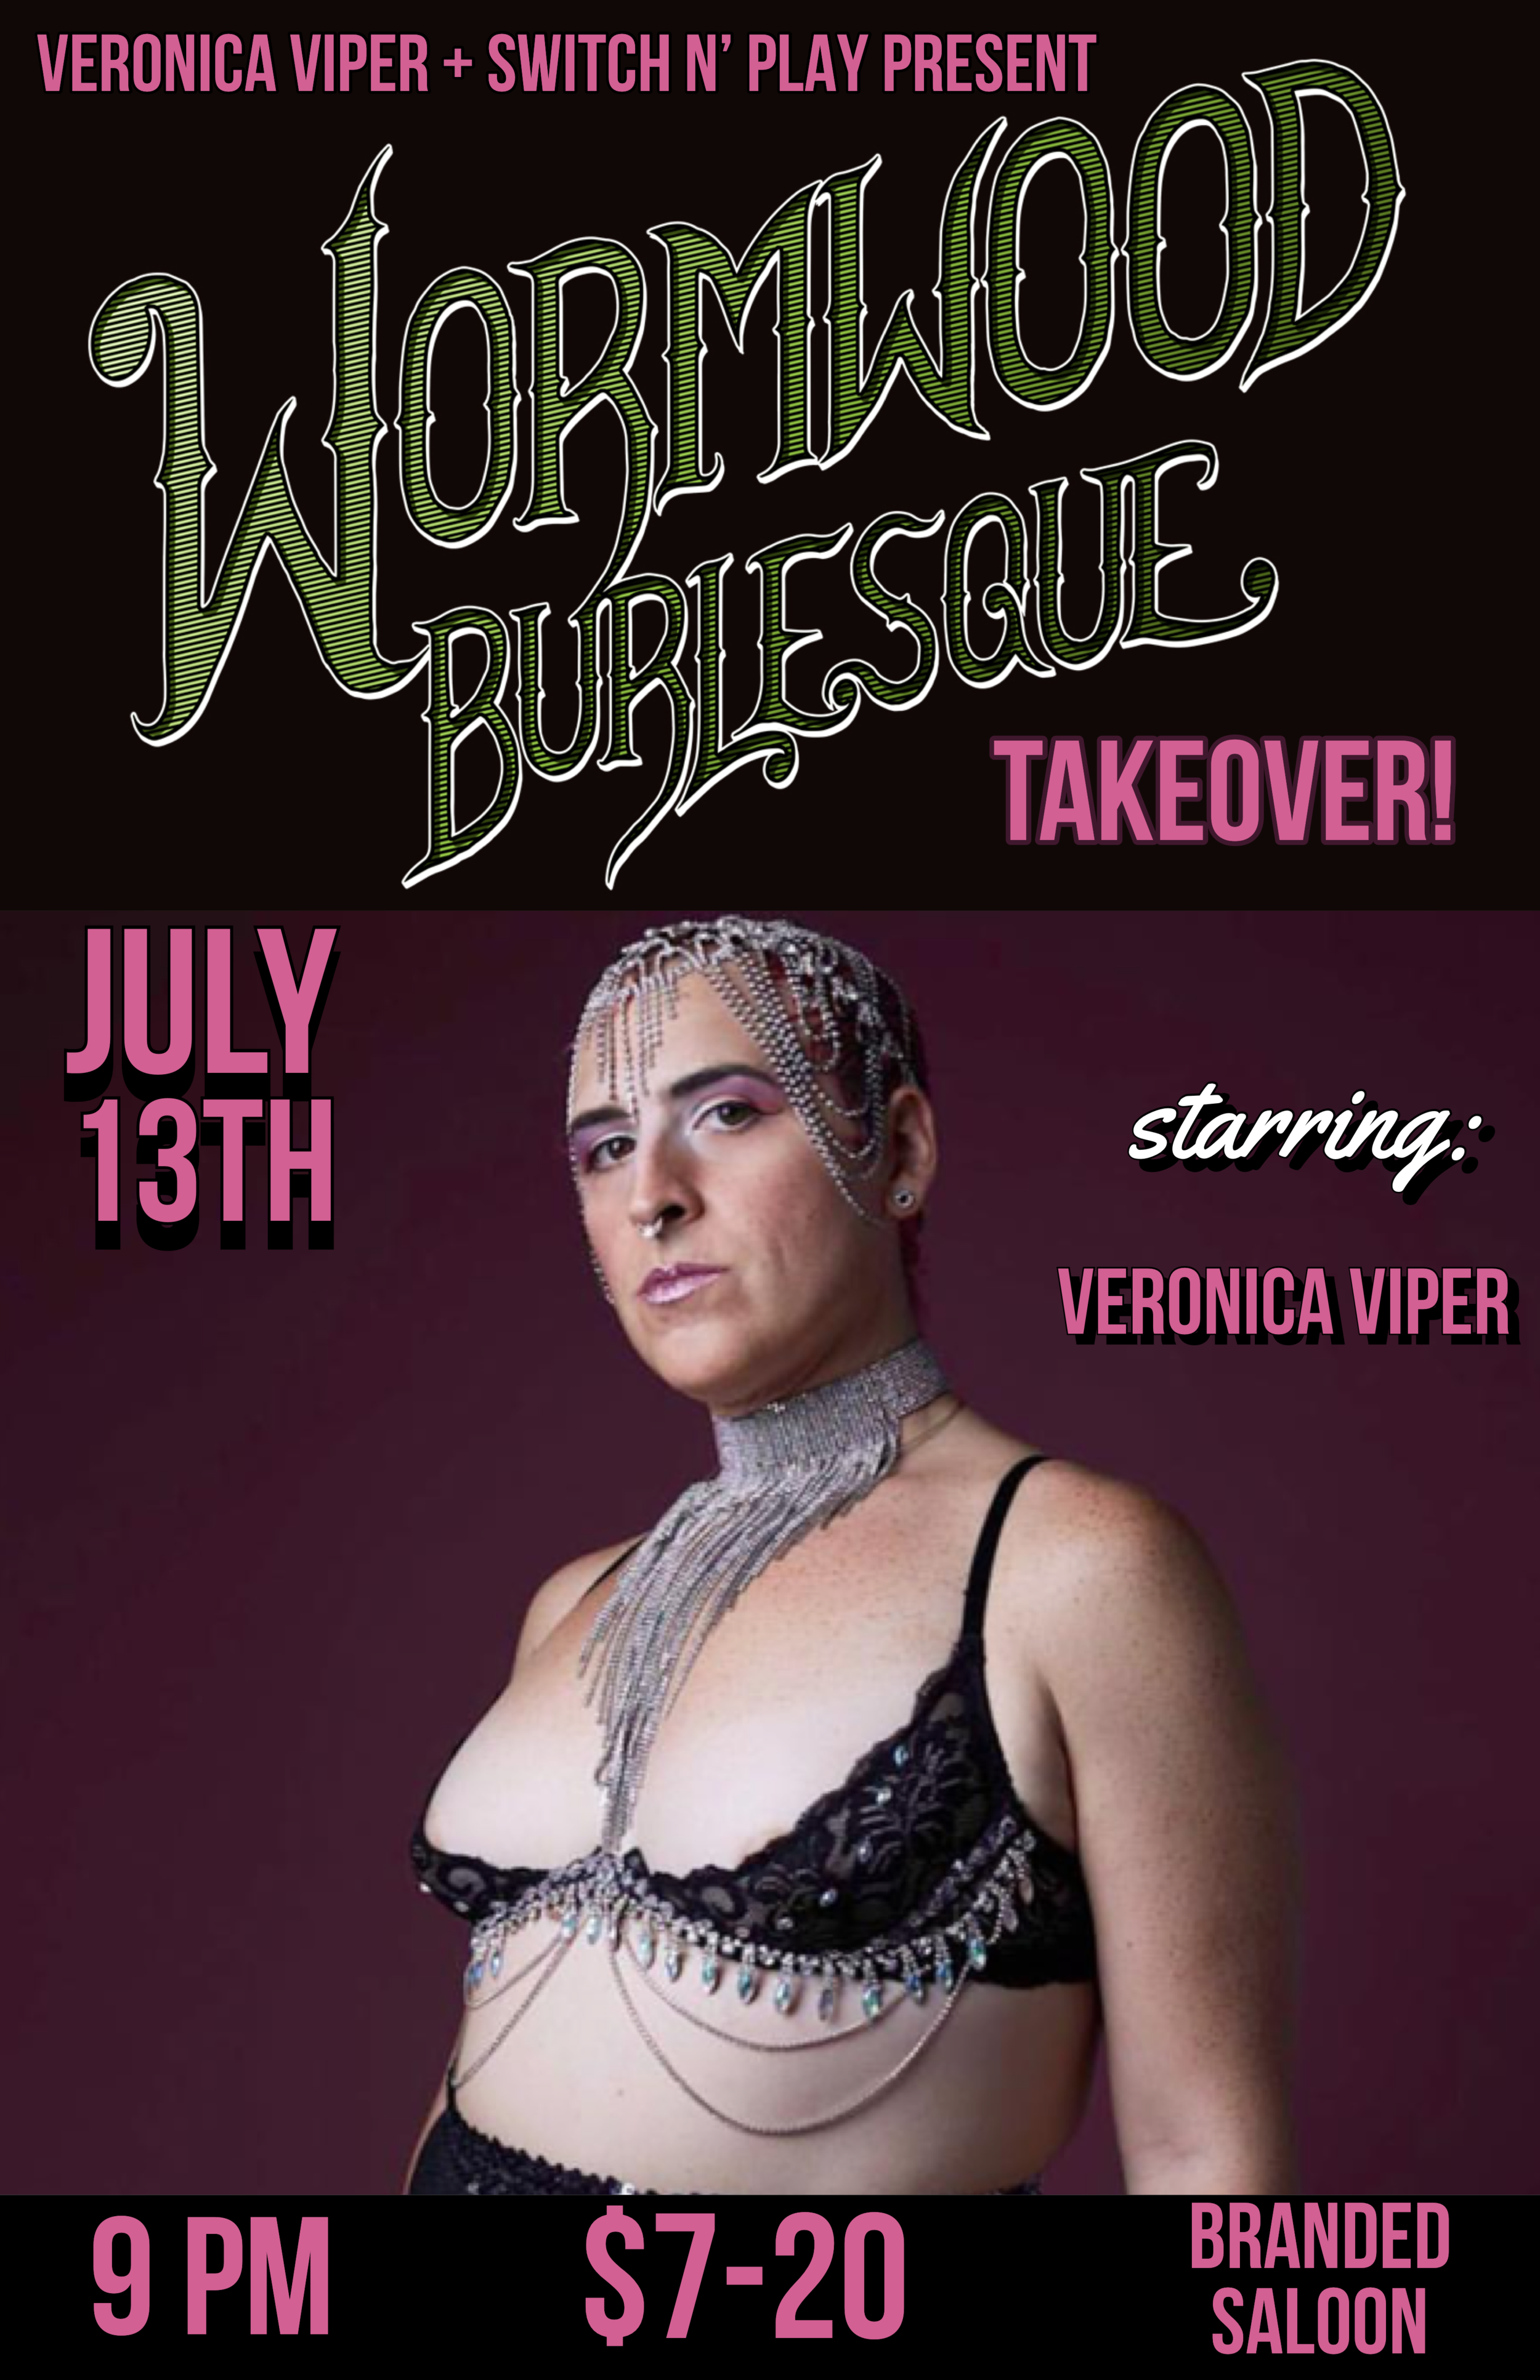 "Wormwood Burlesque TAKEOVER of Switch N Play at Branded SaloonTickets Available Below - use code ""VIPER"" - ART - PERFORMANCE - NUDITY - MEANING"